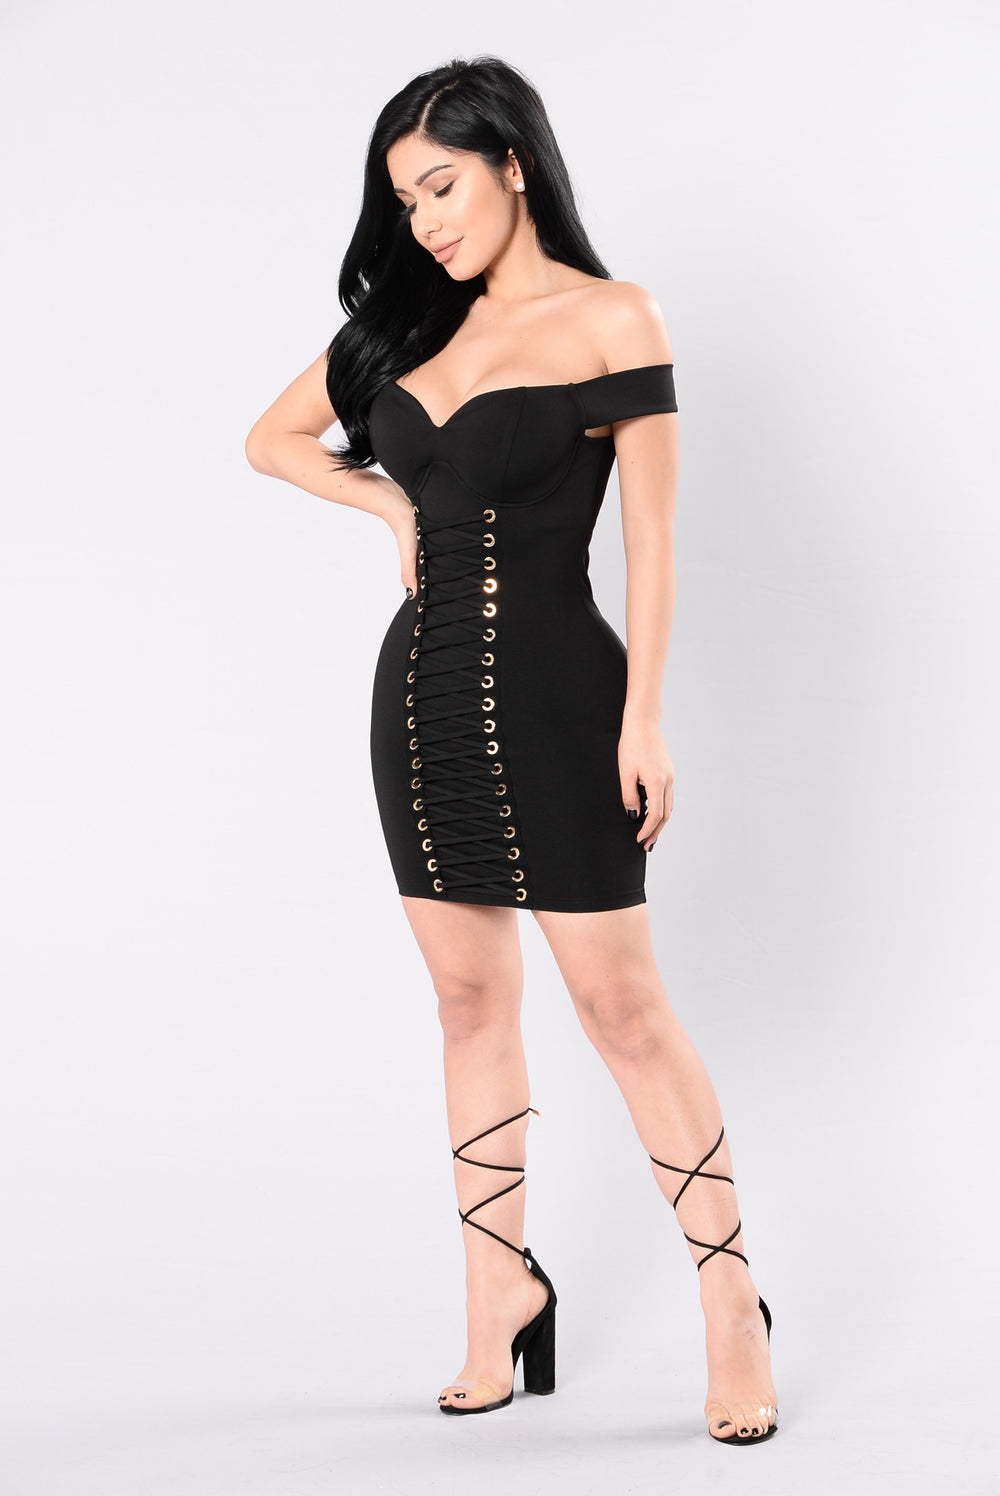 Hungover Off Love Dress - Black